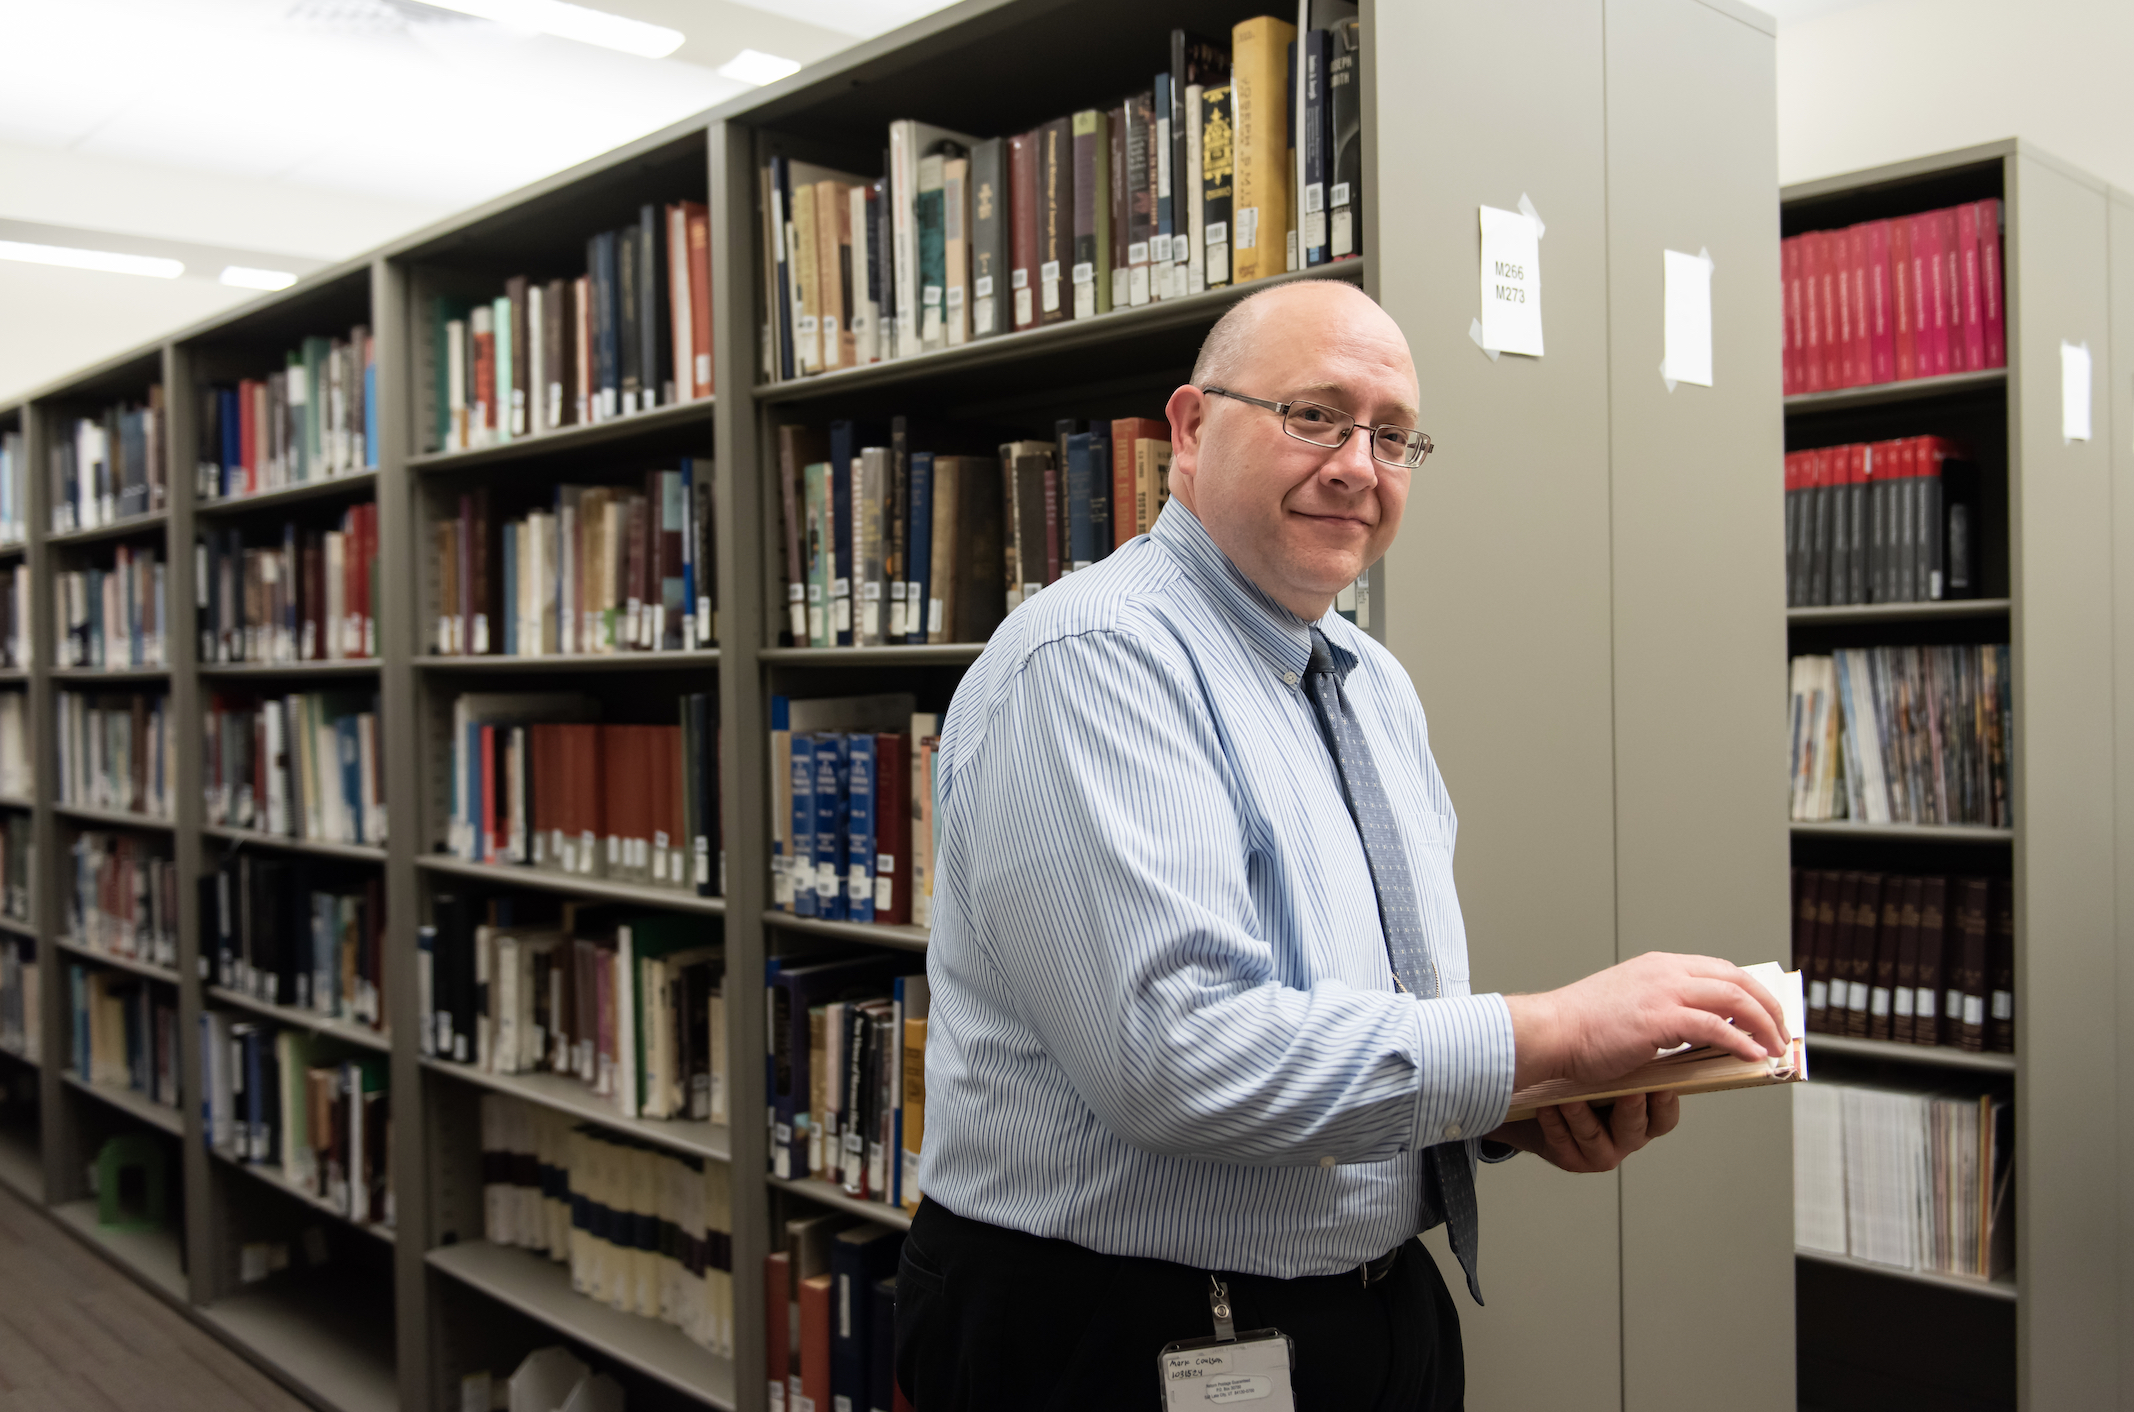 Mark Coulson, an editor and source checker for the Joseph Smith Papers, walks through the project library.